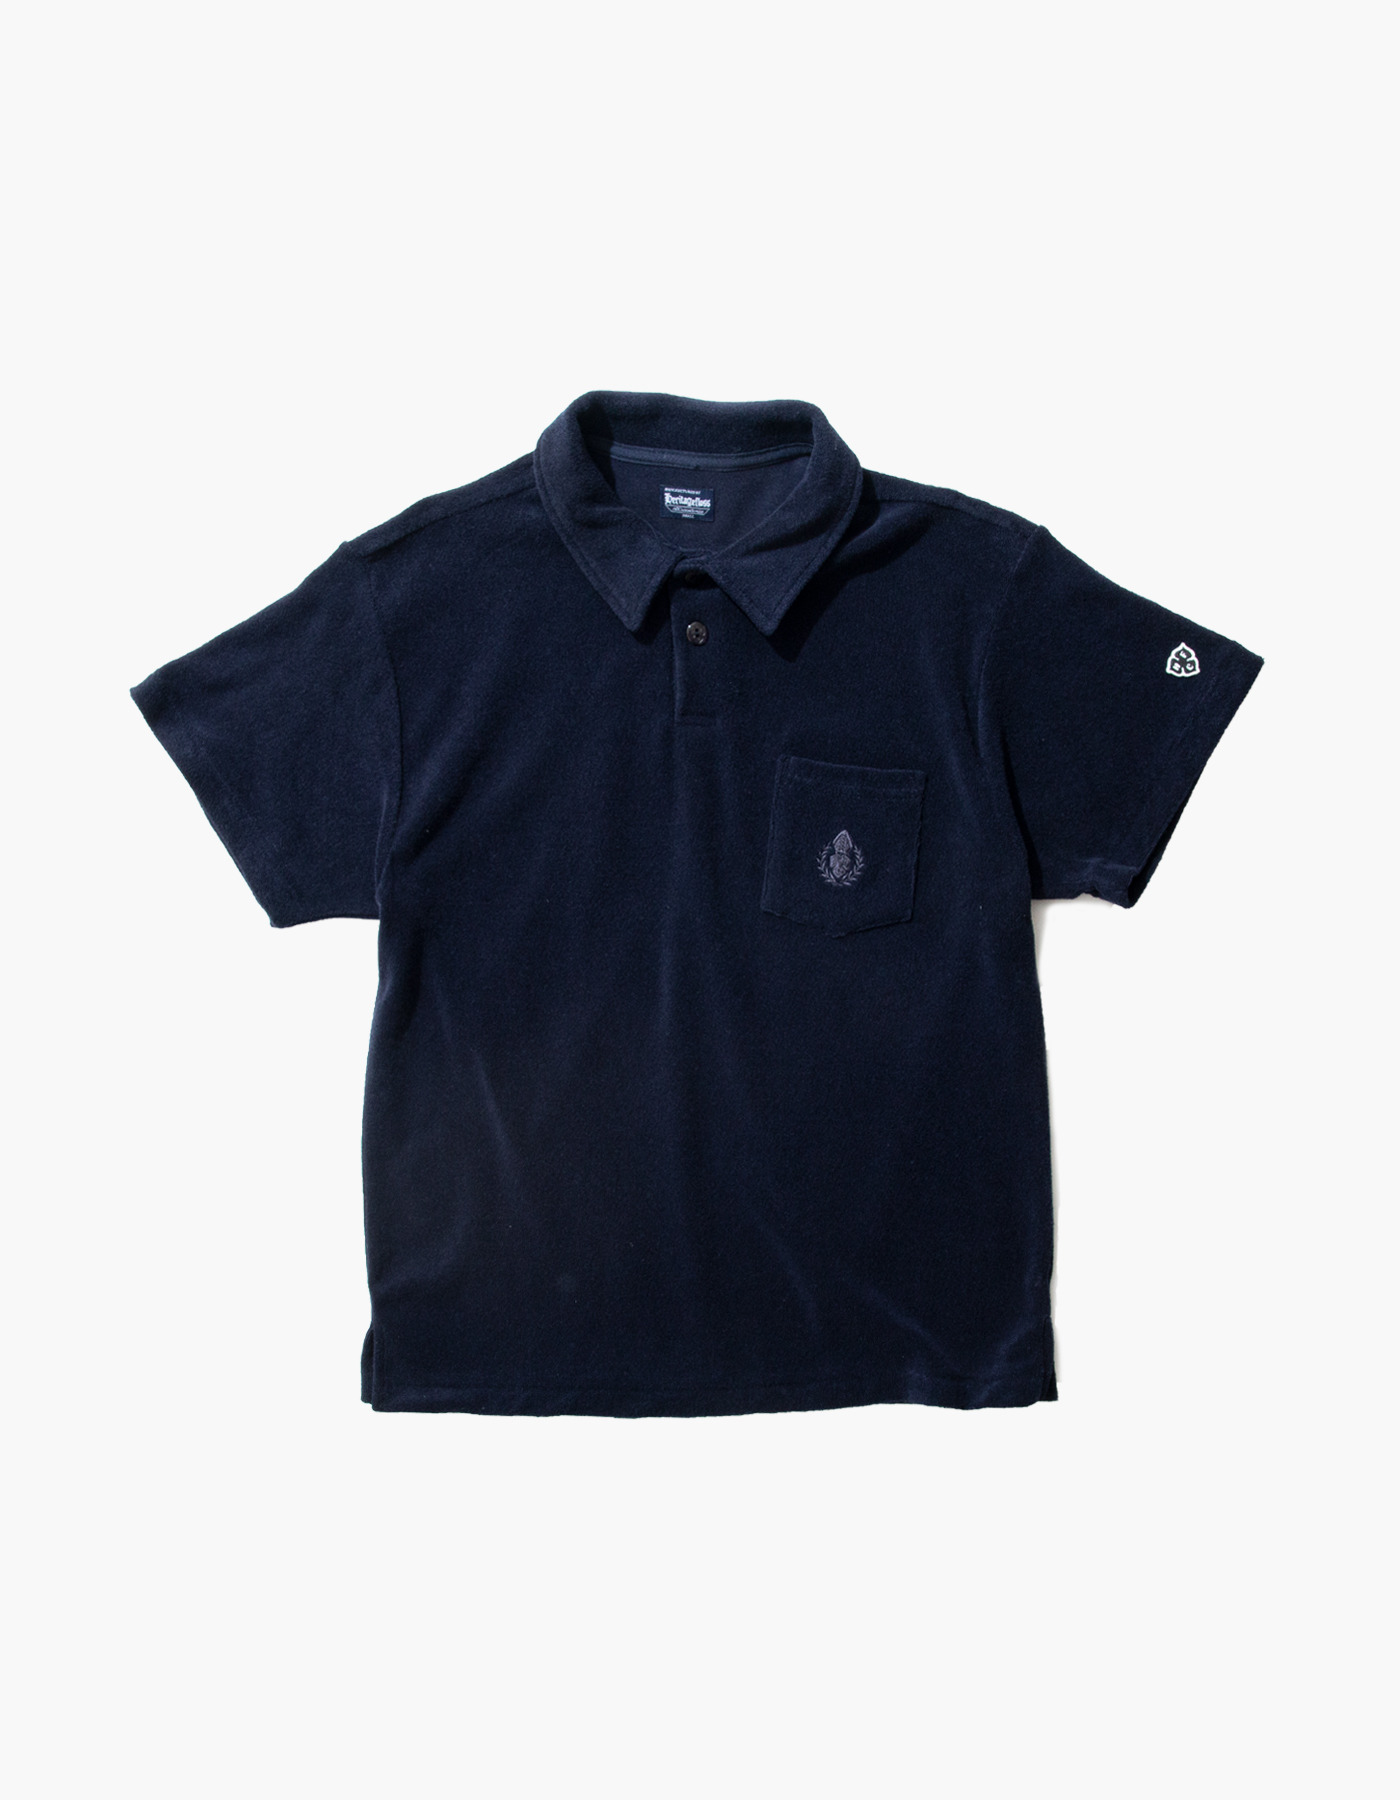 HFC CREST TOWEL POLO SHIRTS / NAVY